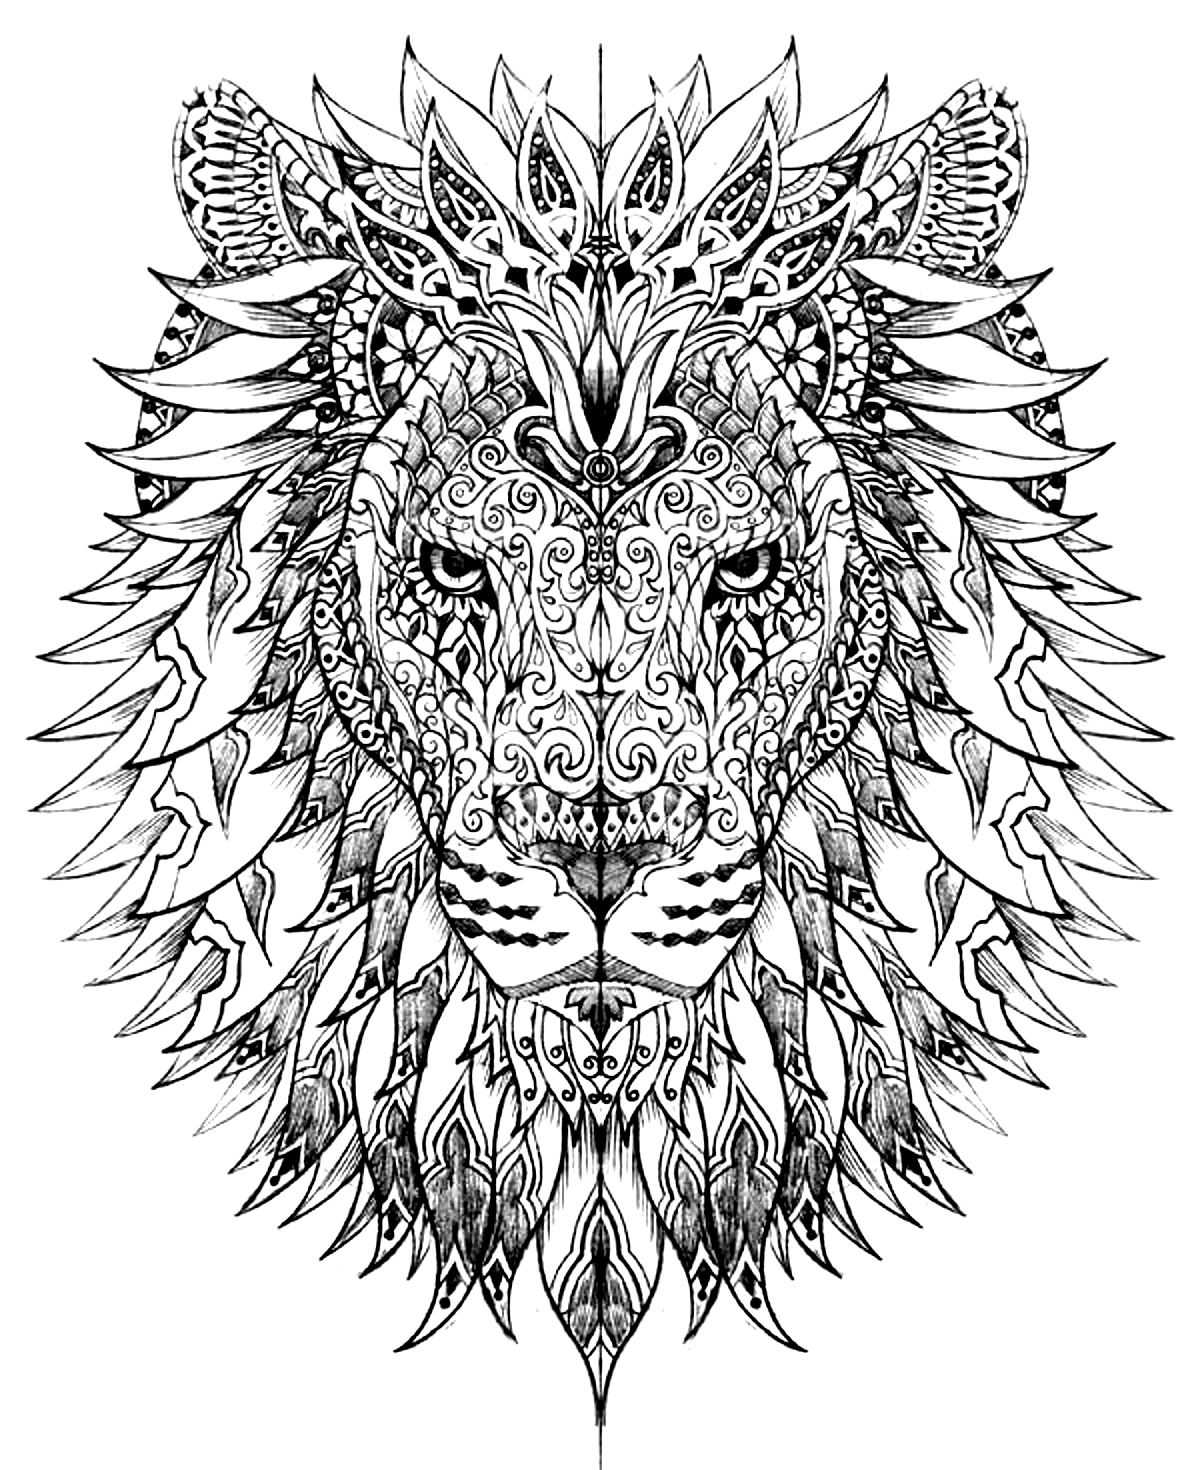 coloring pages for adults difficult animals Lion head   Lions Adult Coloring Pages coloring pages for adults difficult animals